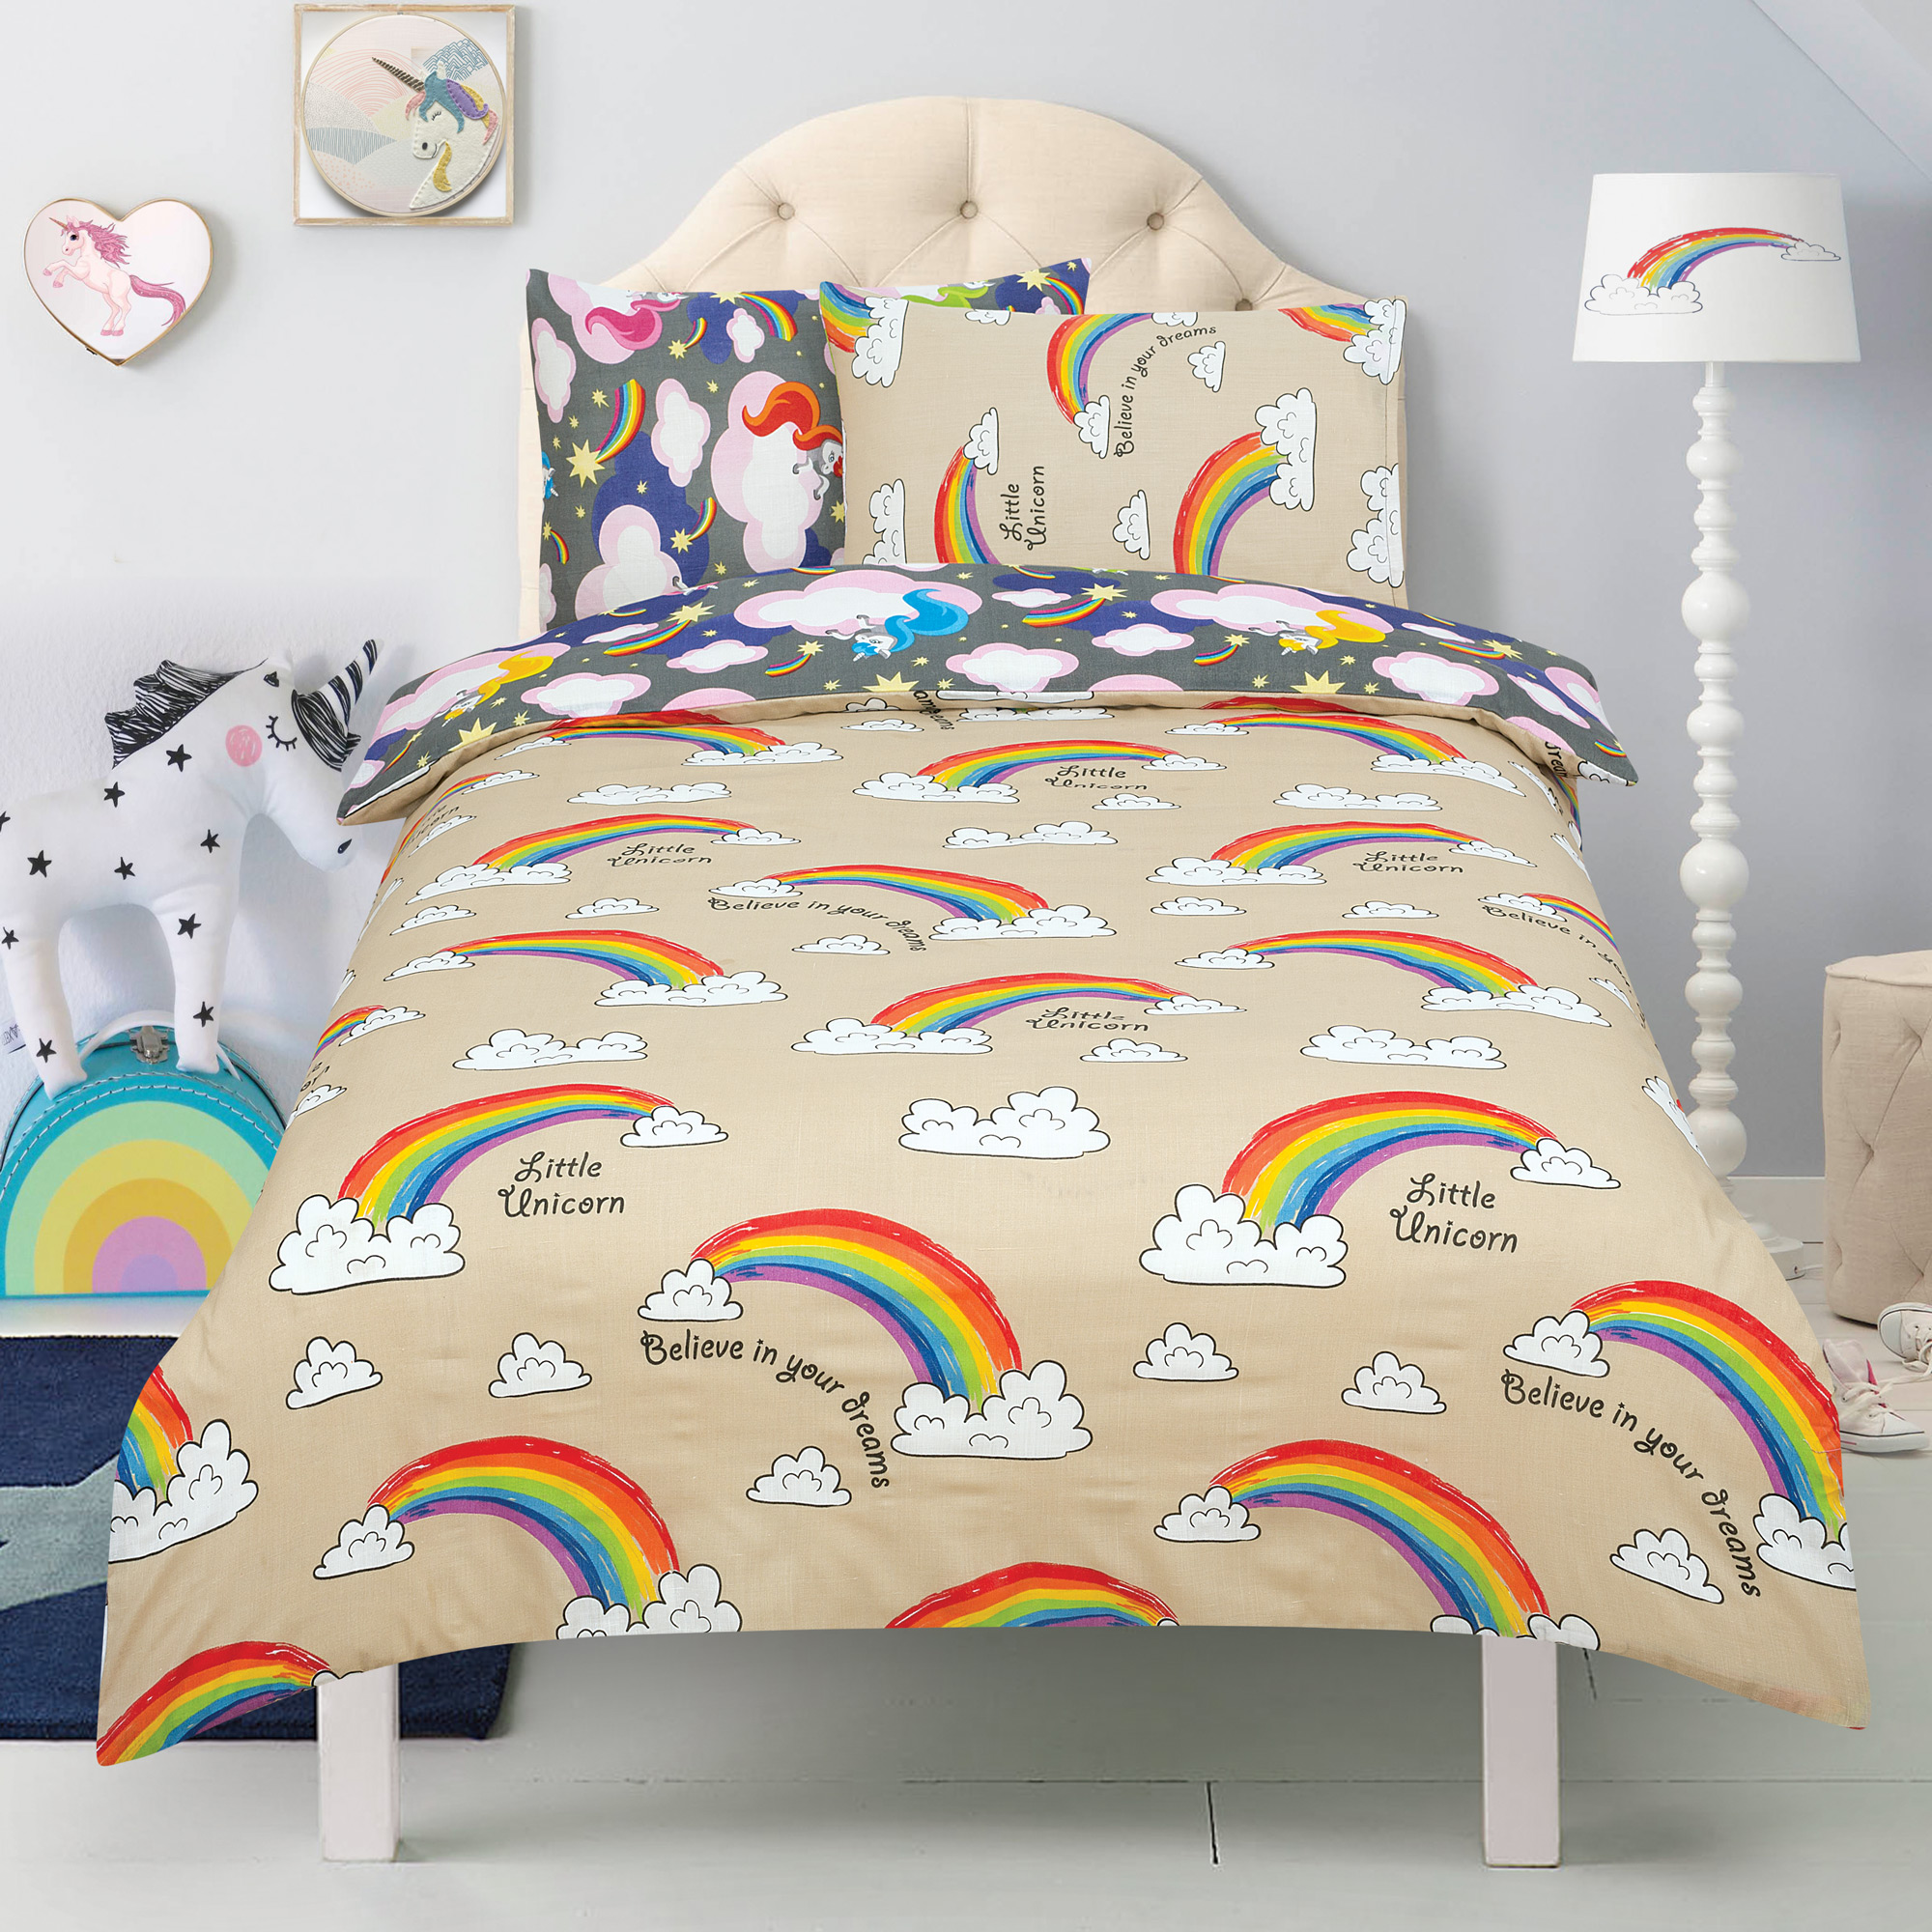 Unicorn 'Believe In Your Dreams' Charcoal Reversible Rotary Double Bed Duvet Quilt Cover Set